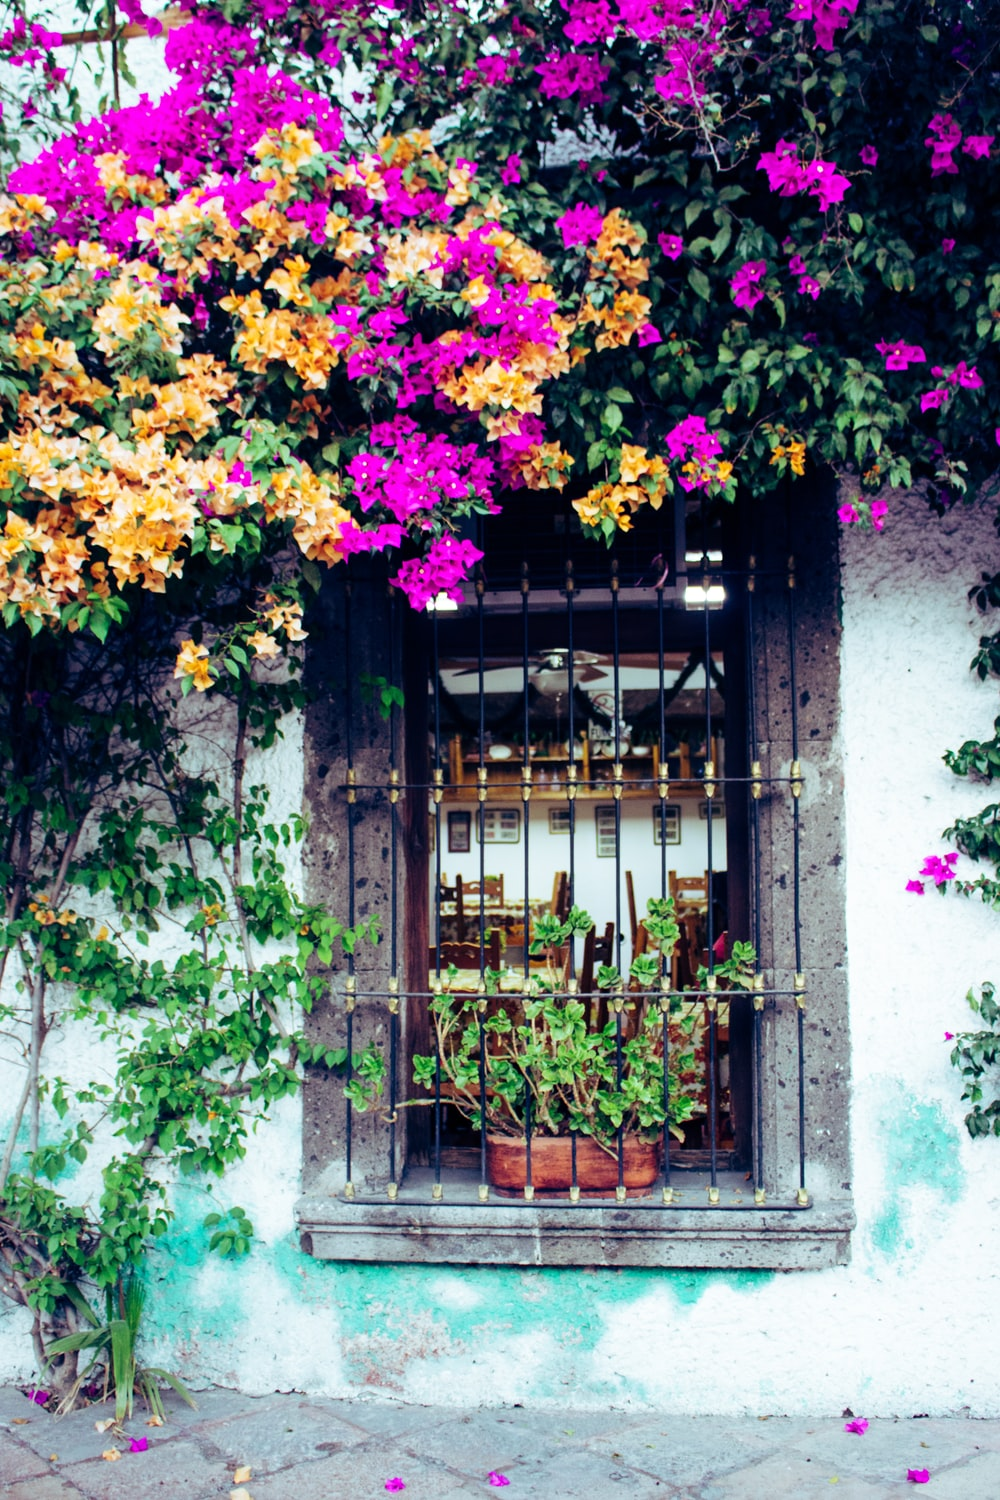 purple and yellow bougainvillea flowers near window